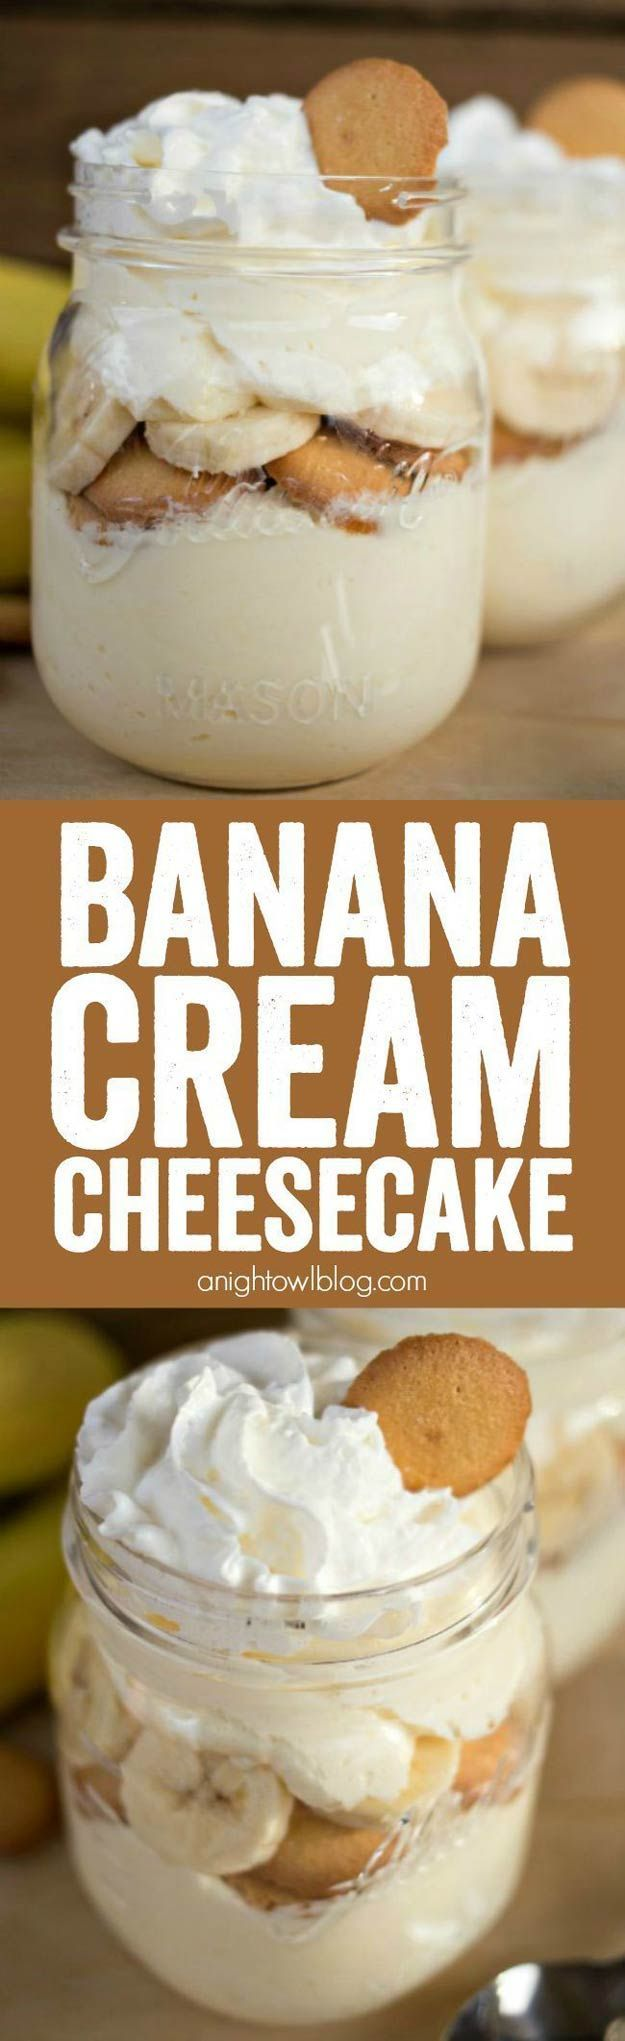 No Bake Cheese Cake Recipe | 17 Easy Sugar Free Recipes for your New Year Diet - Cut Down On The Sugar With The Best Homemade Recipe Compilation For Breakfast, Lunch, Snacks And Dinner! by Pioneer Settler at http://pioneersettler.com/easy-sugar-free-recipes-new-year-diet/